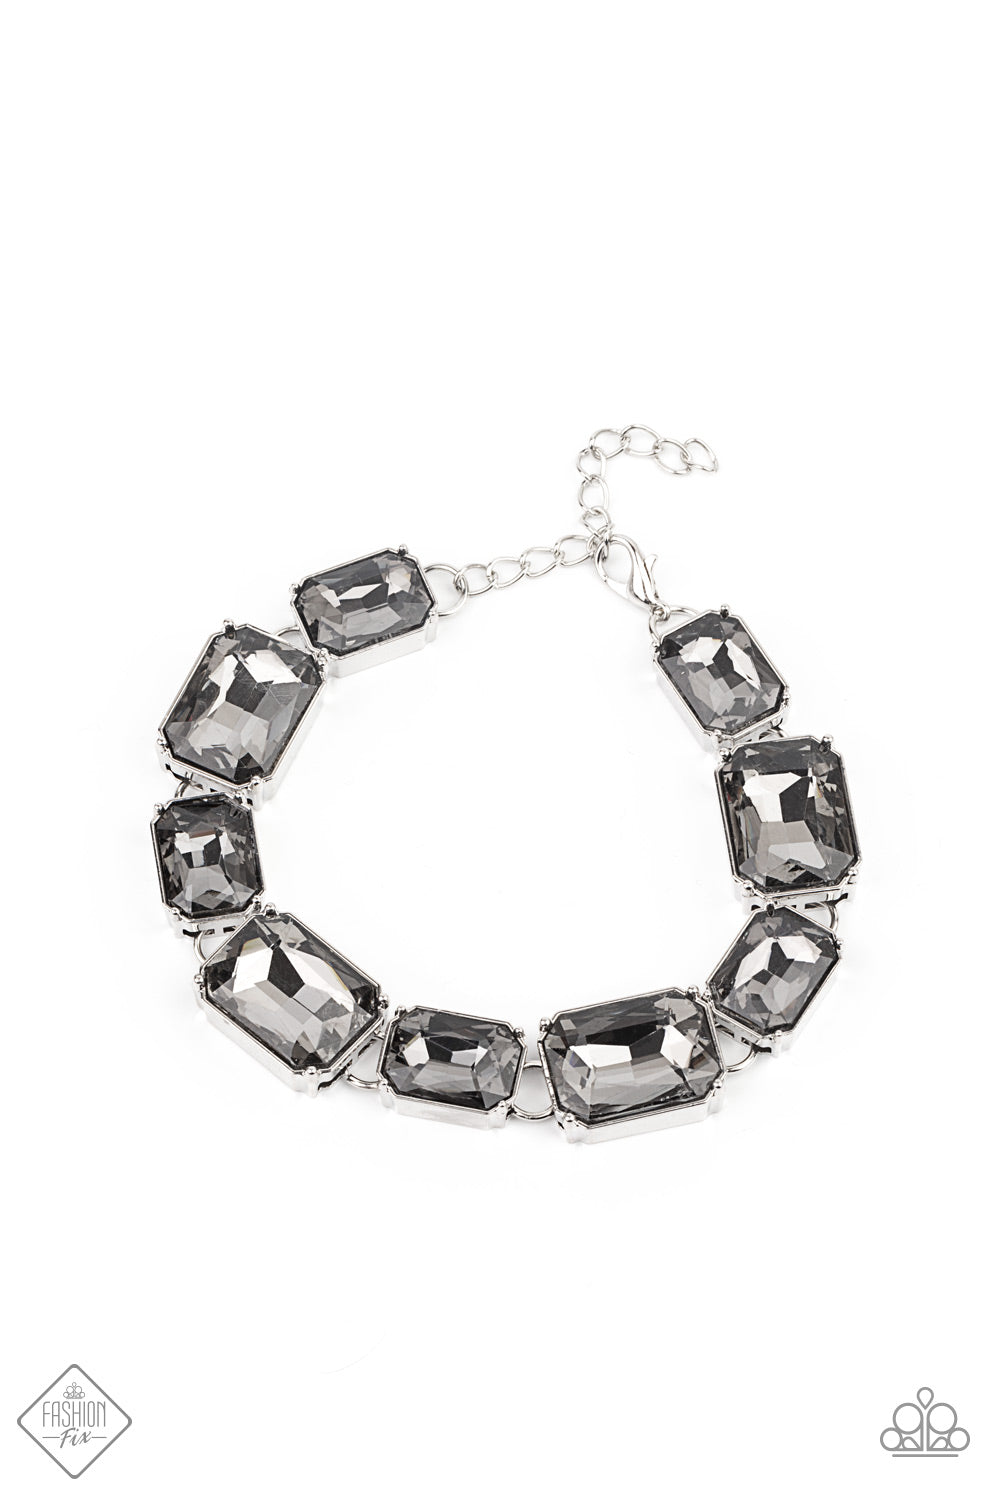 Paparazzi After Hours Silver Clasp Bracelet - Fashion Fix Magnificent Musings January 2021